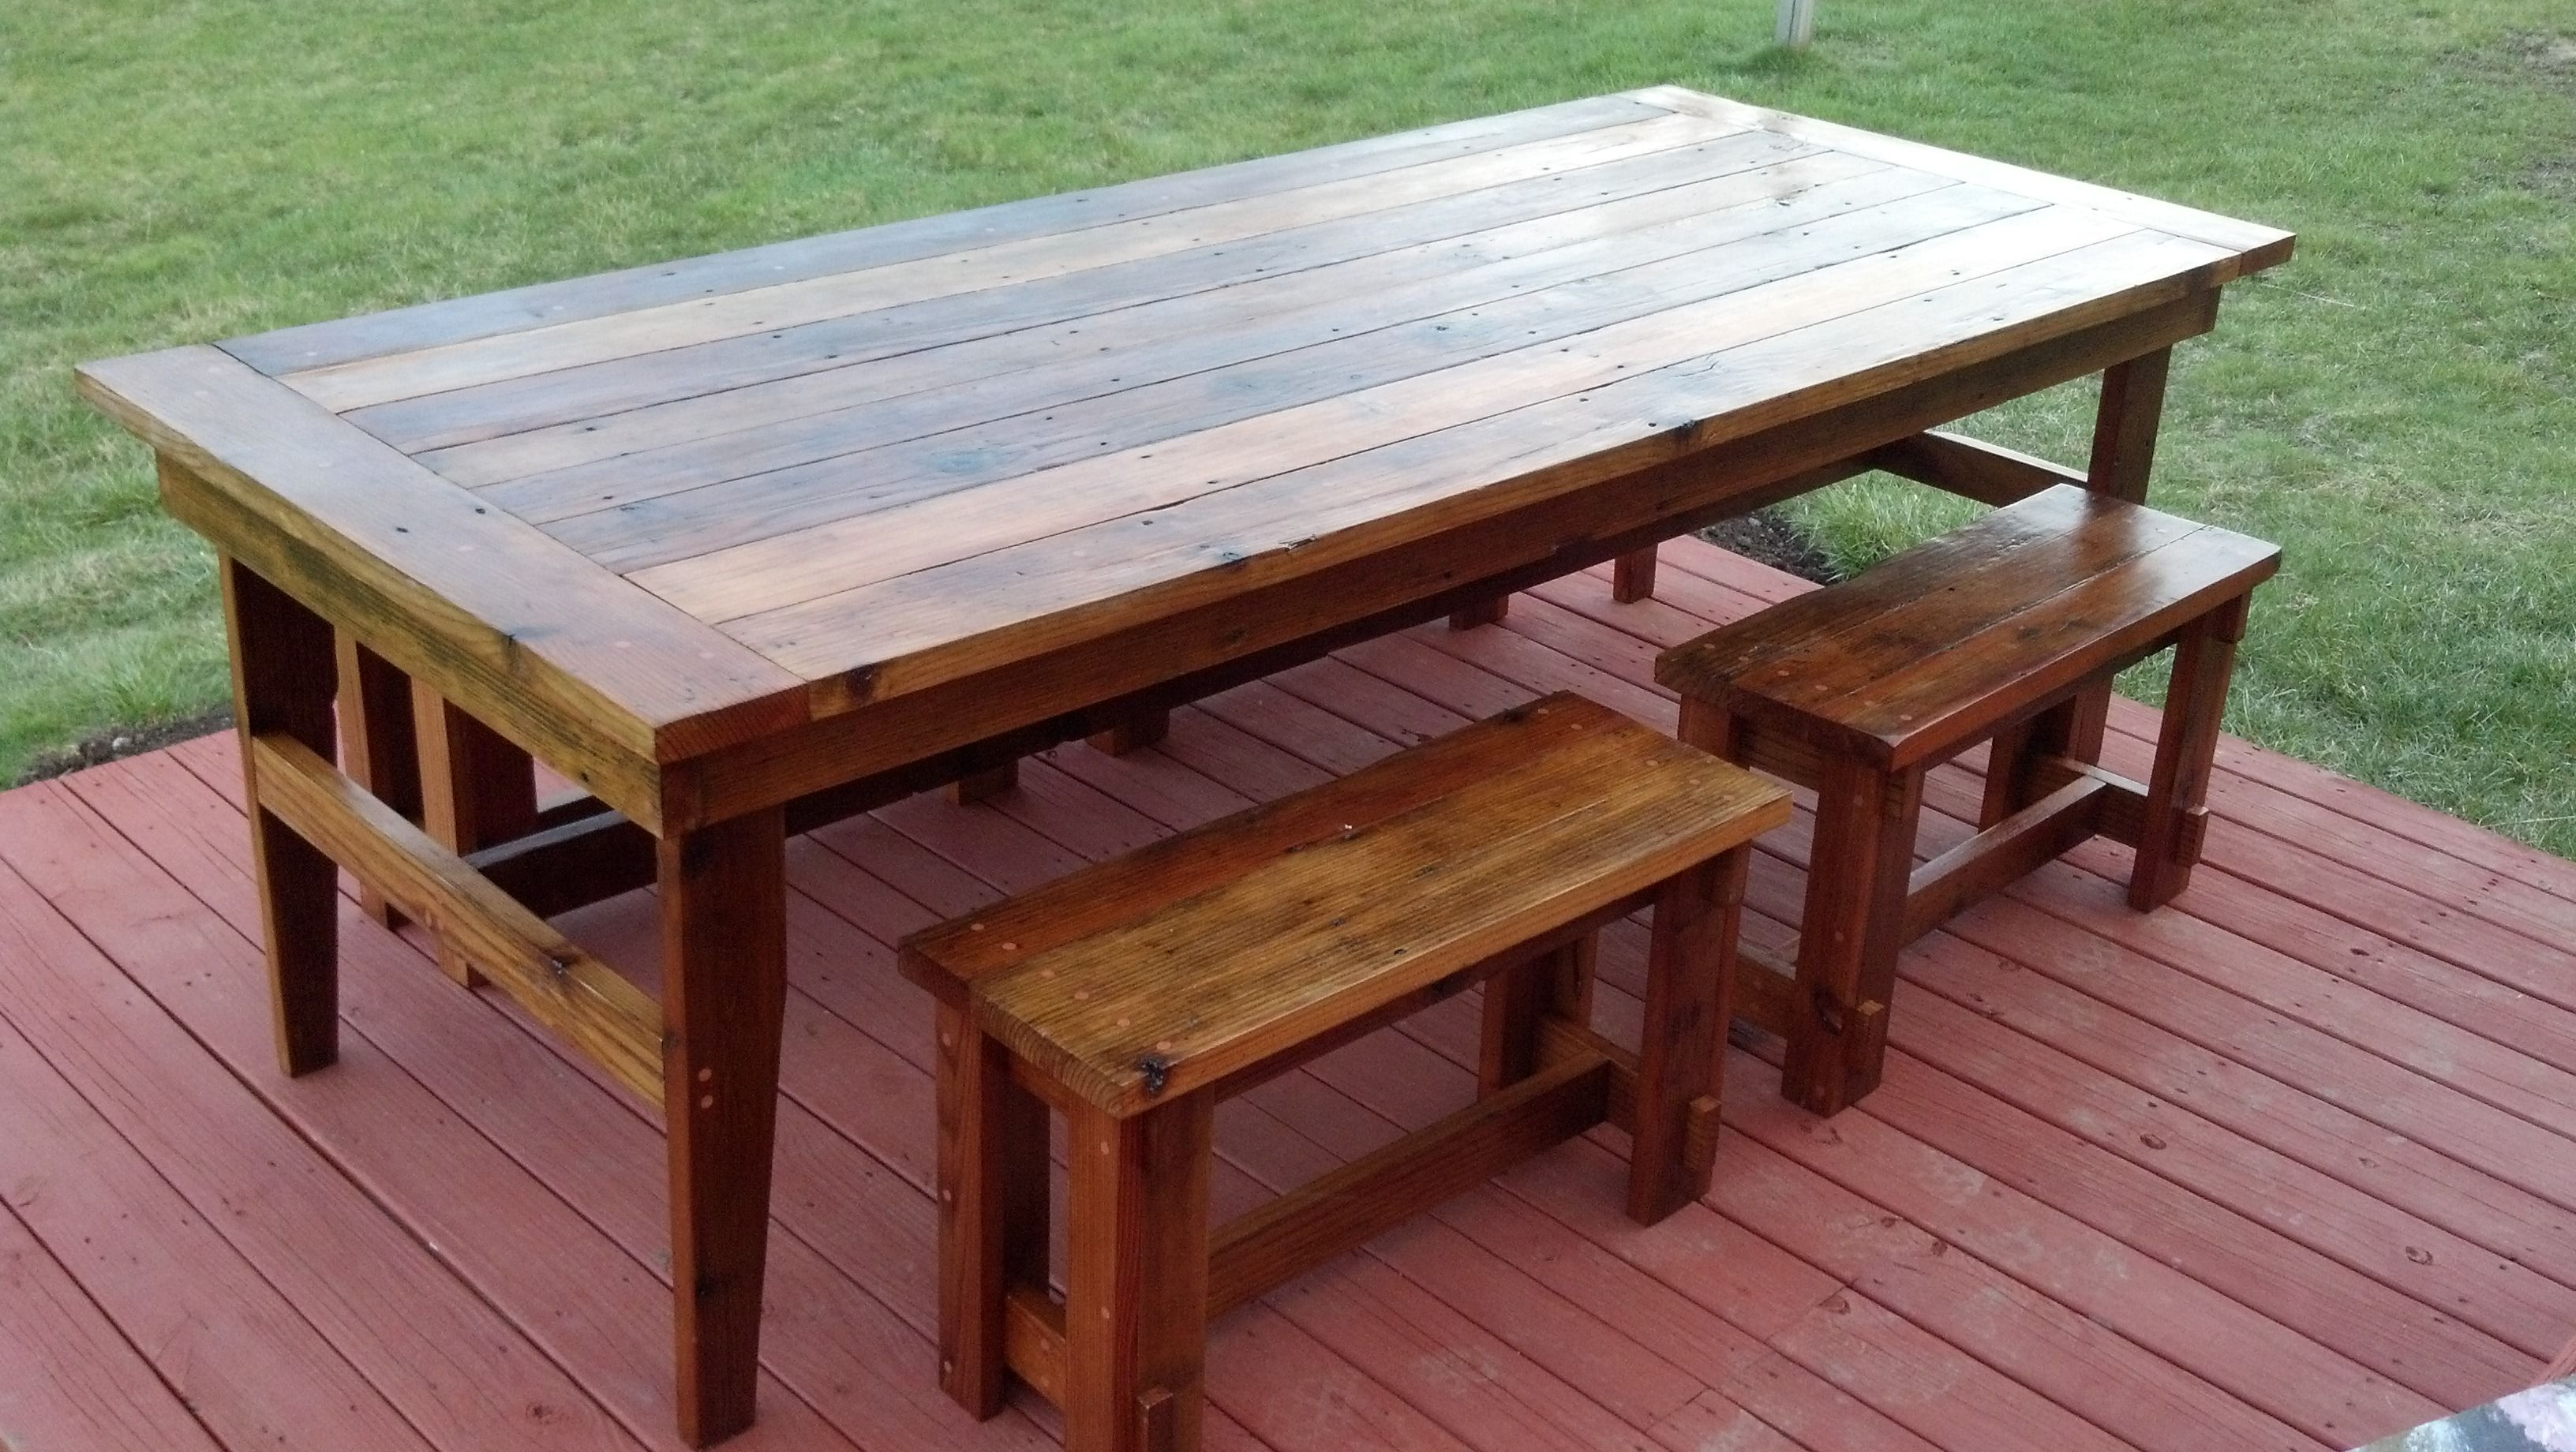 Rustic Farm Table & Benches plans At Home Decor